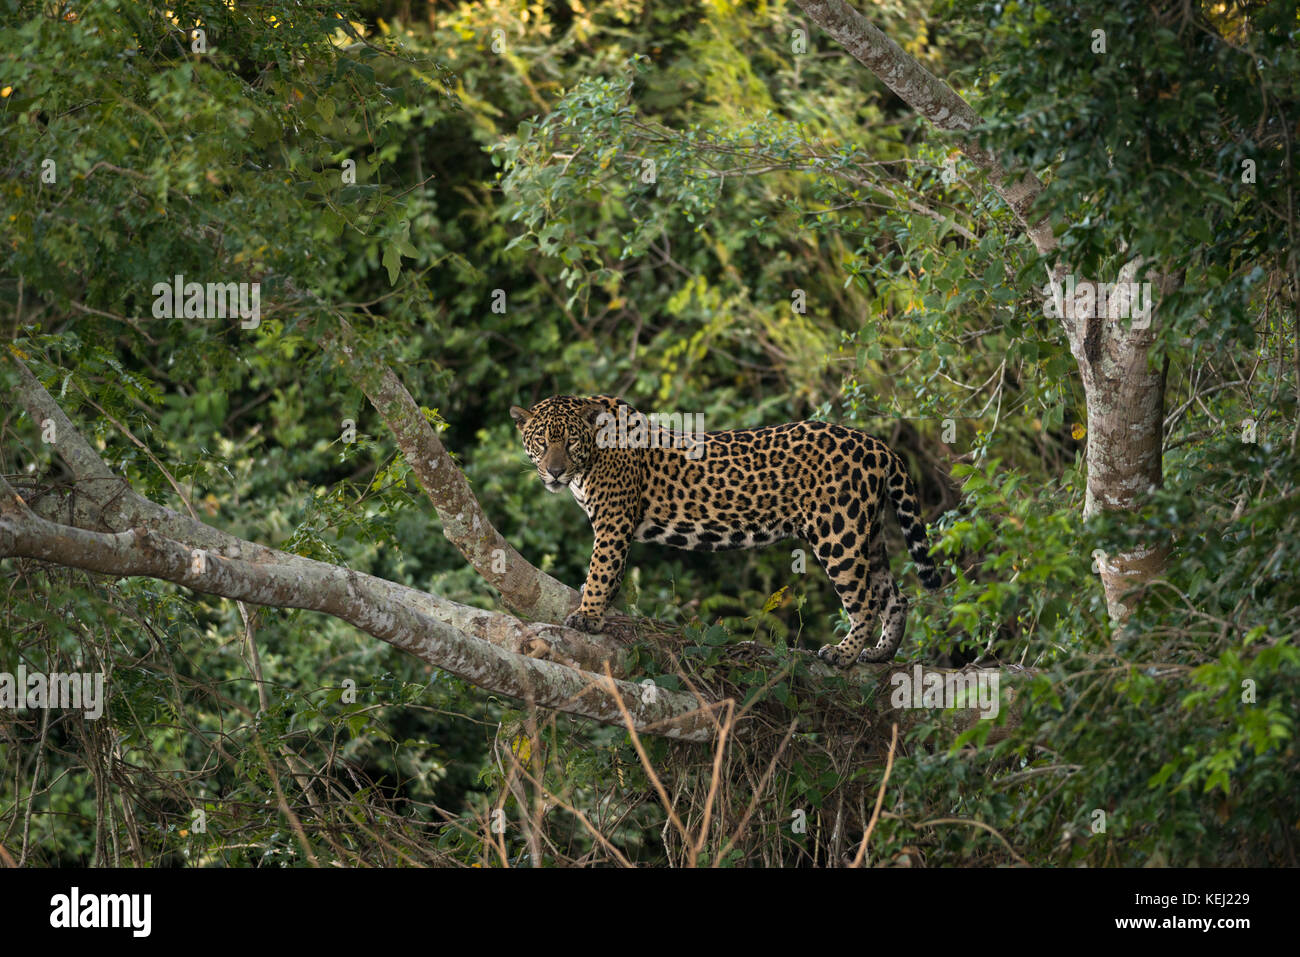 A Jaguar on a tree in North Pantanal, Brazil - Stock Image